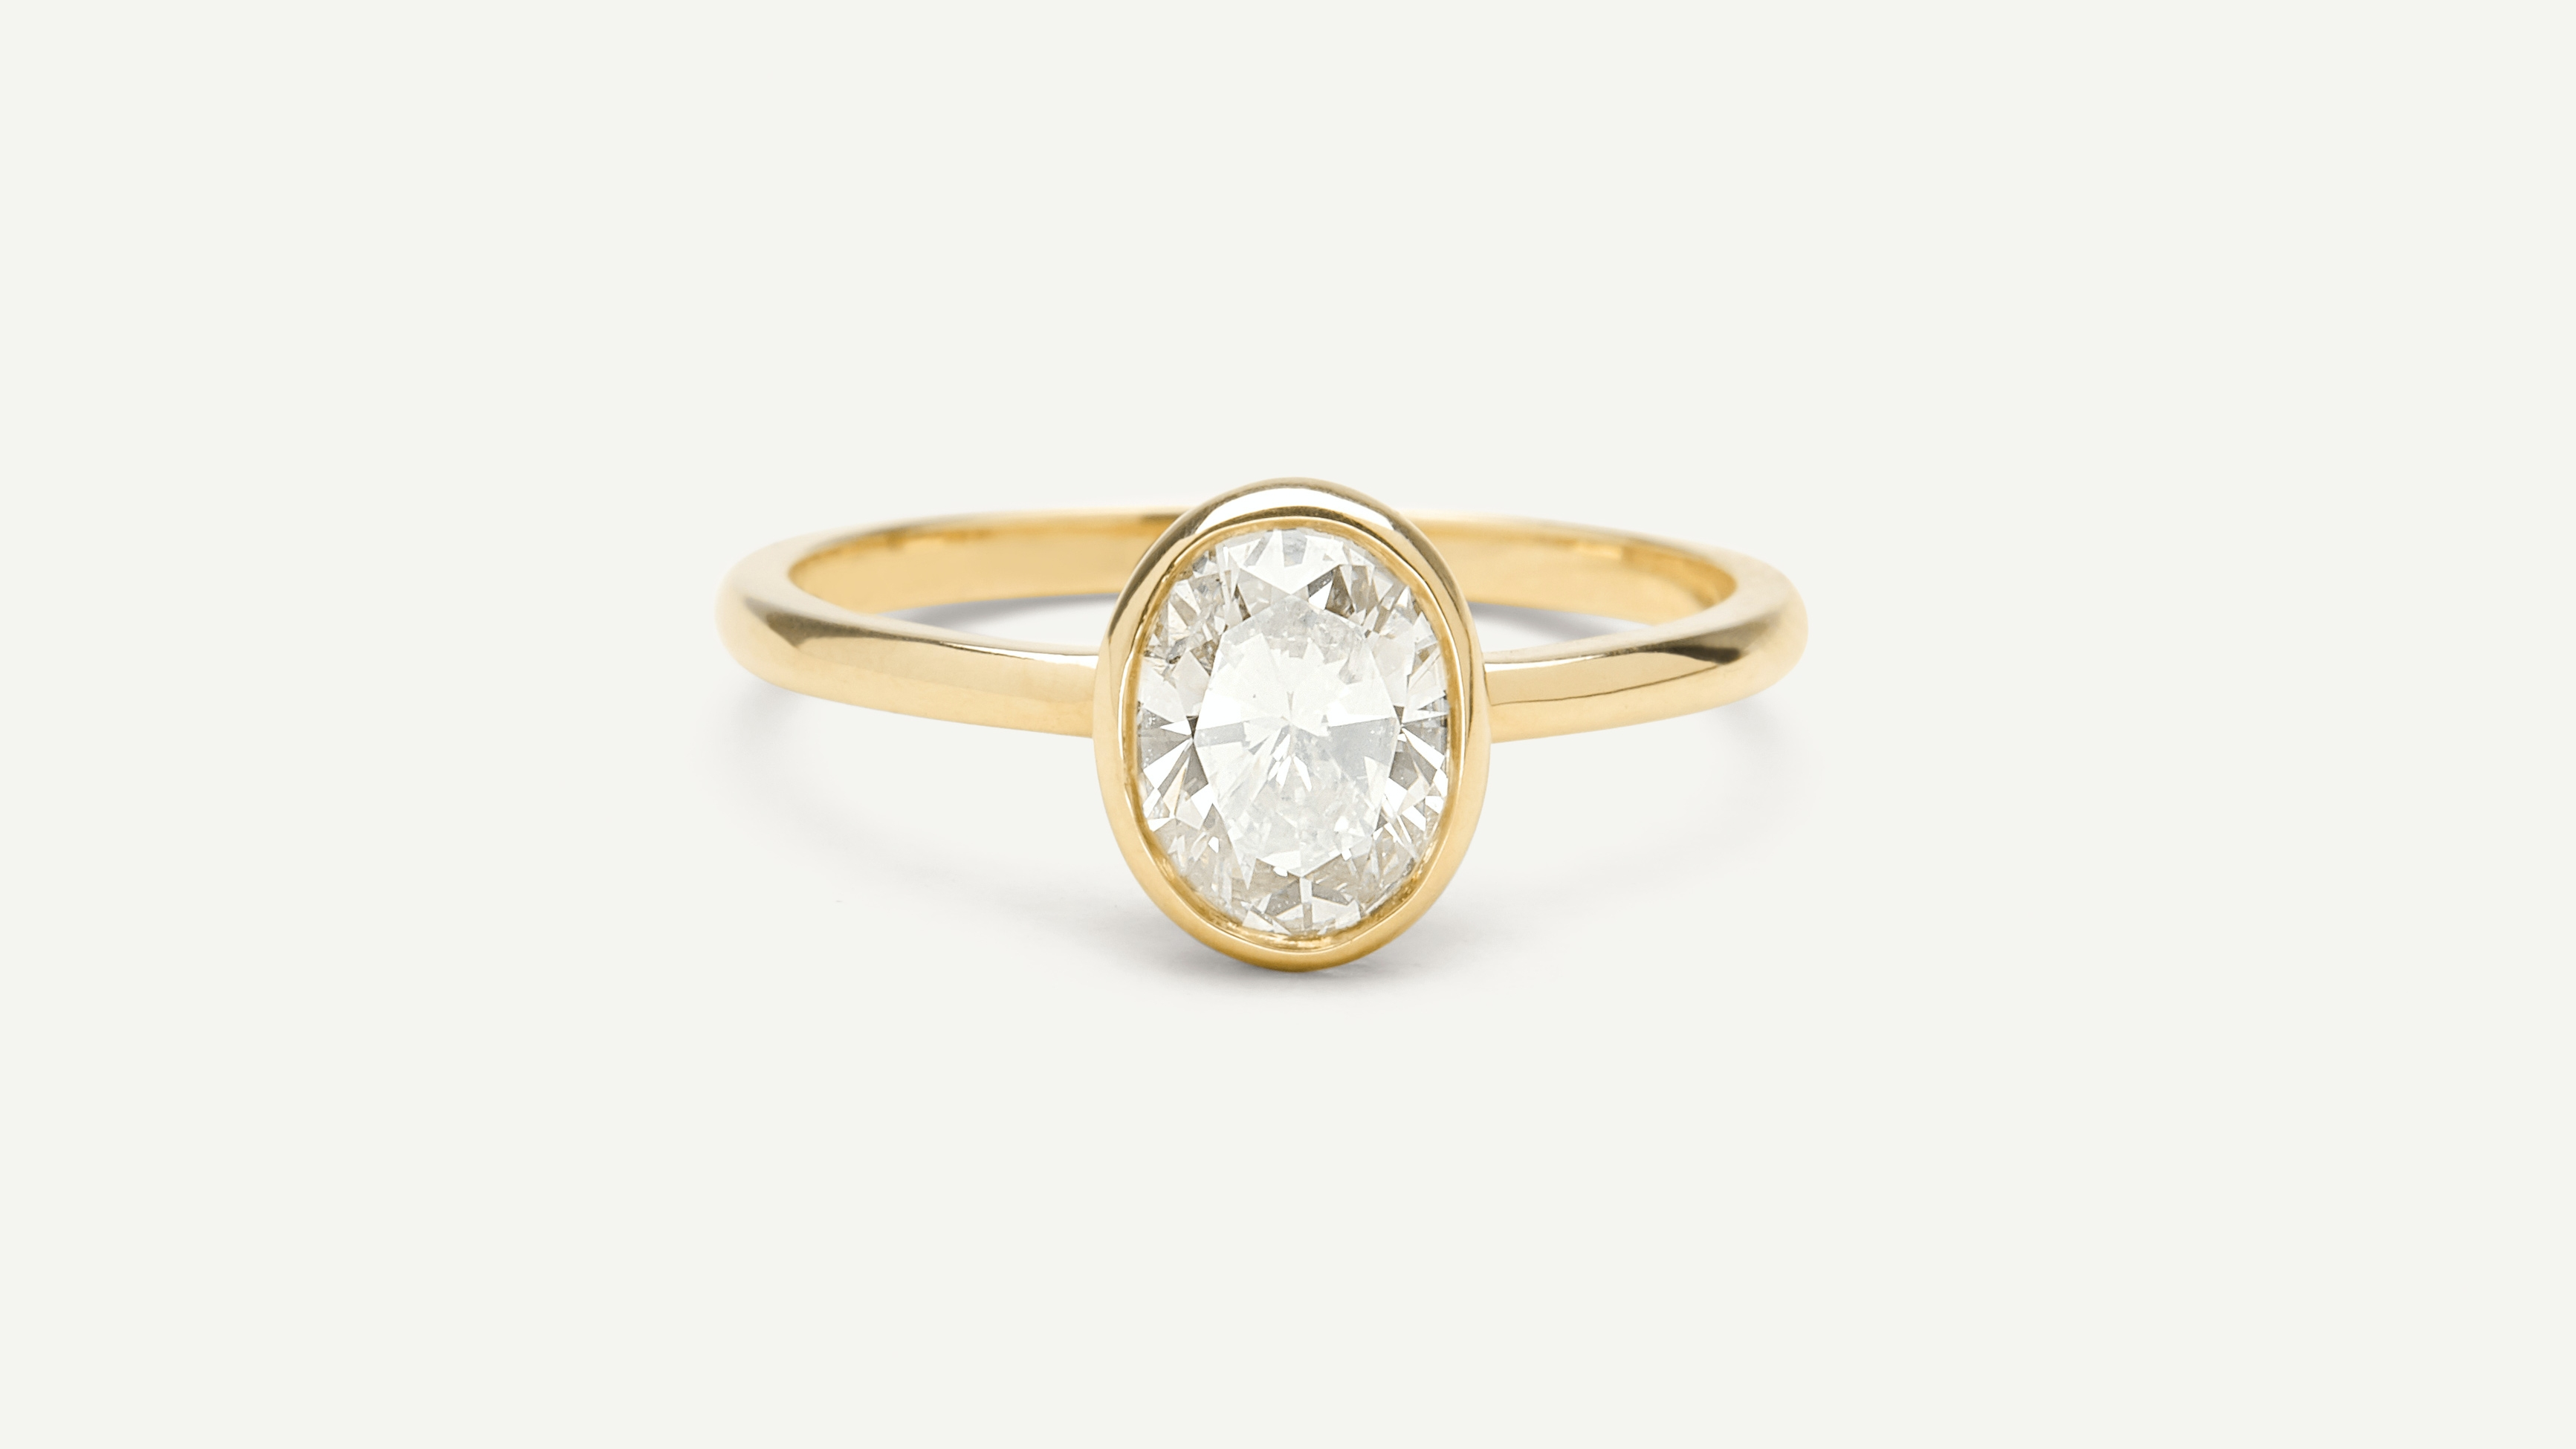 Oval Bezel Diamond Engagement Ring By Vrai Oro